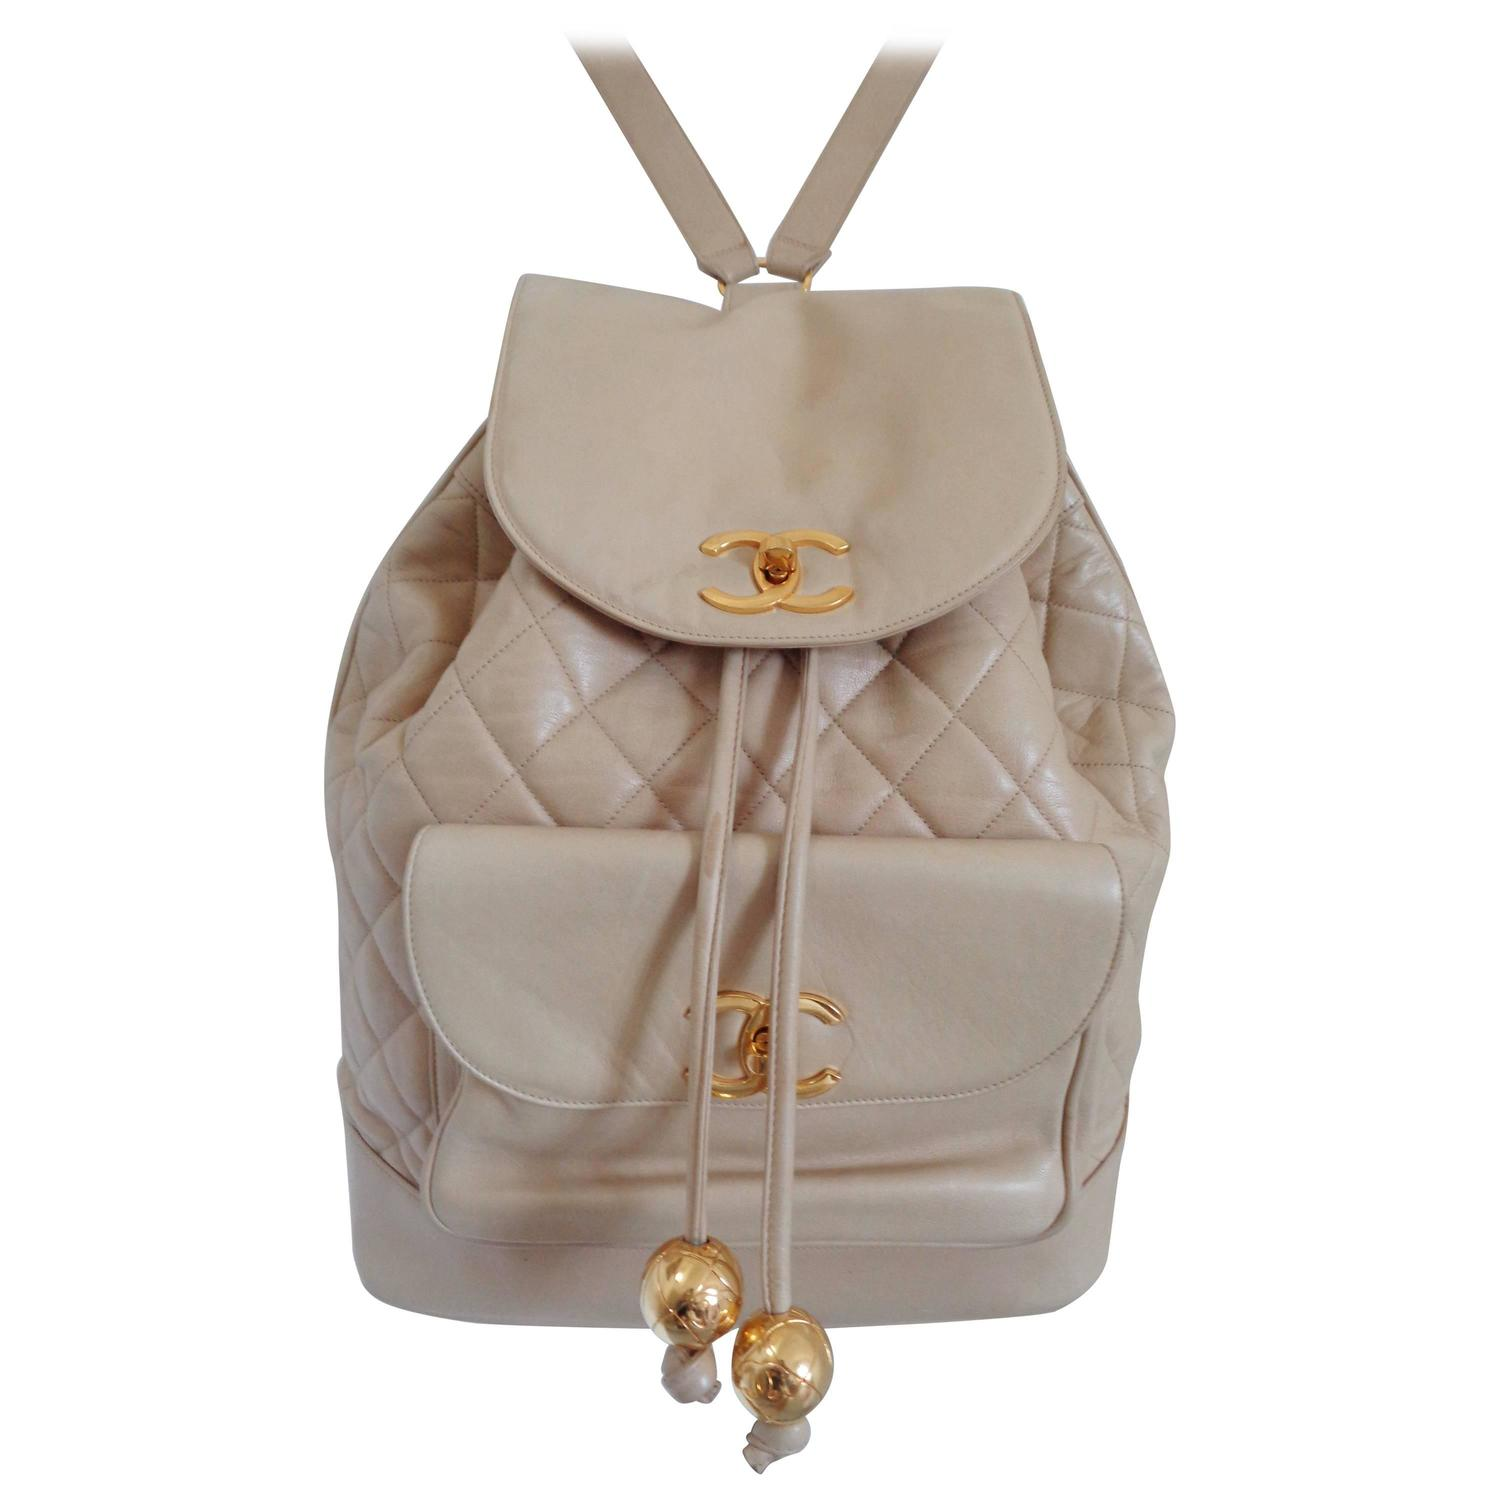 a06576c541c Chanel beije gold hardware Backpack For Sale at 1stdibs